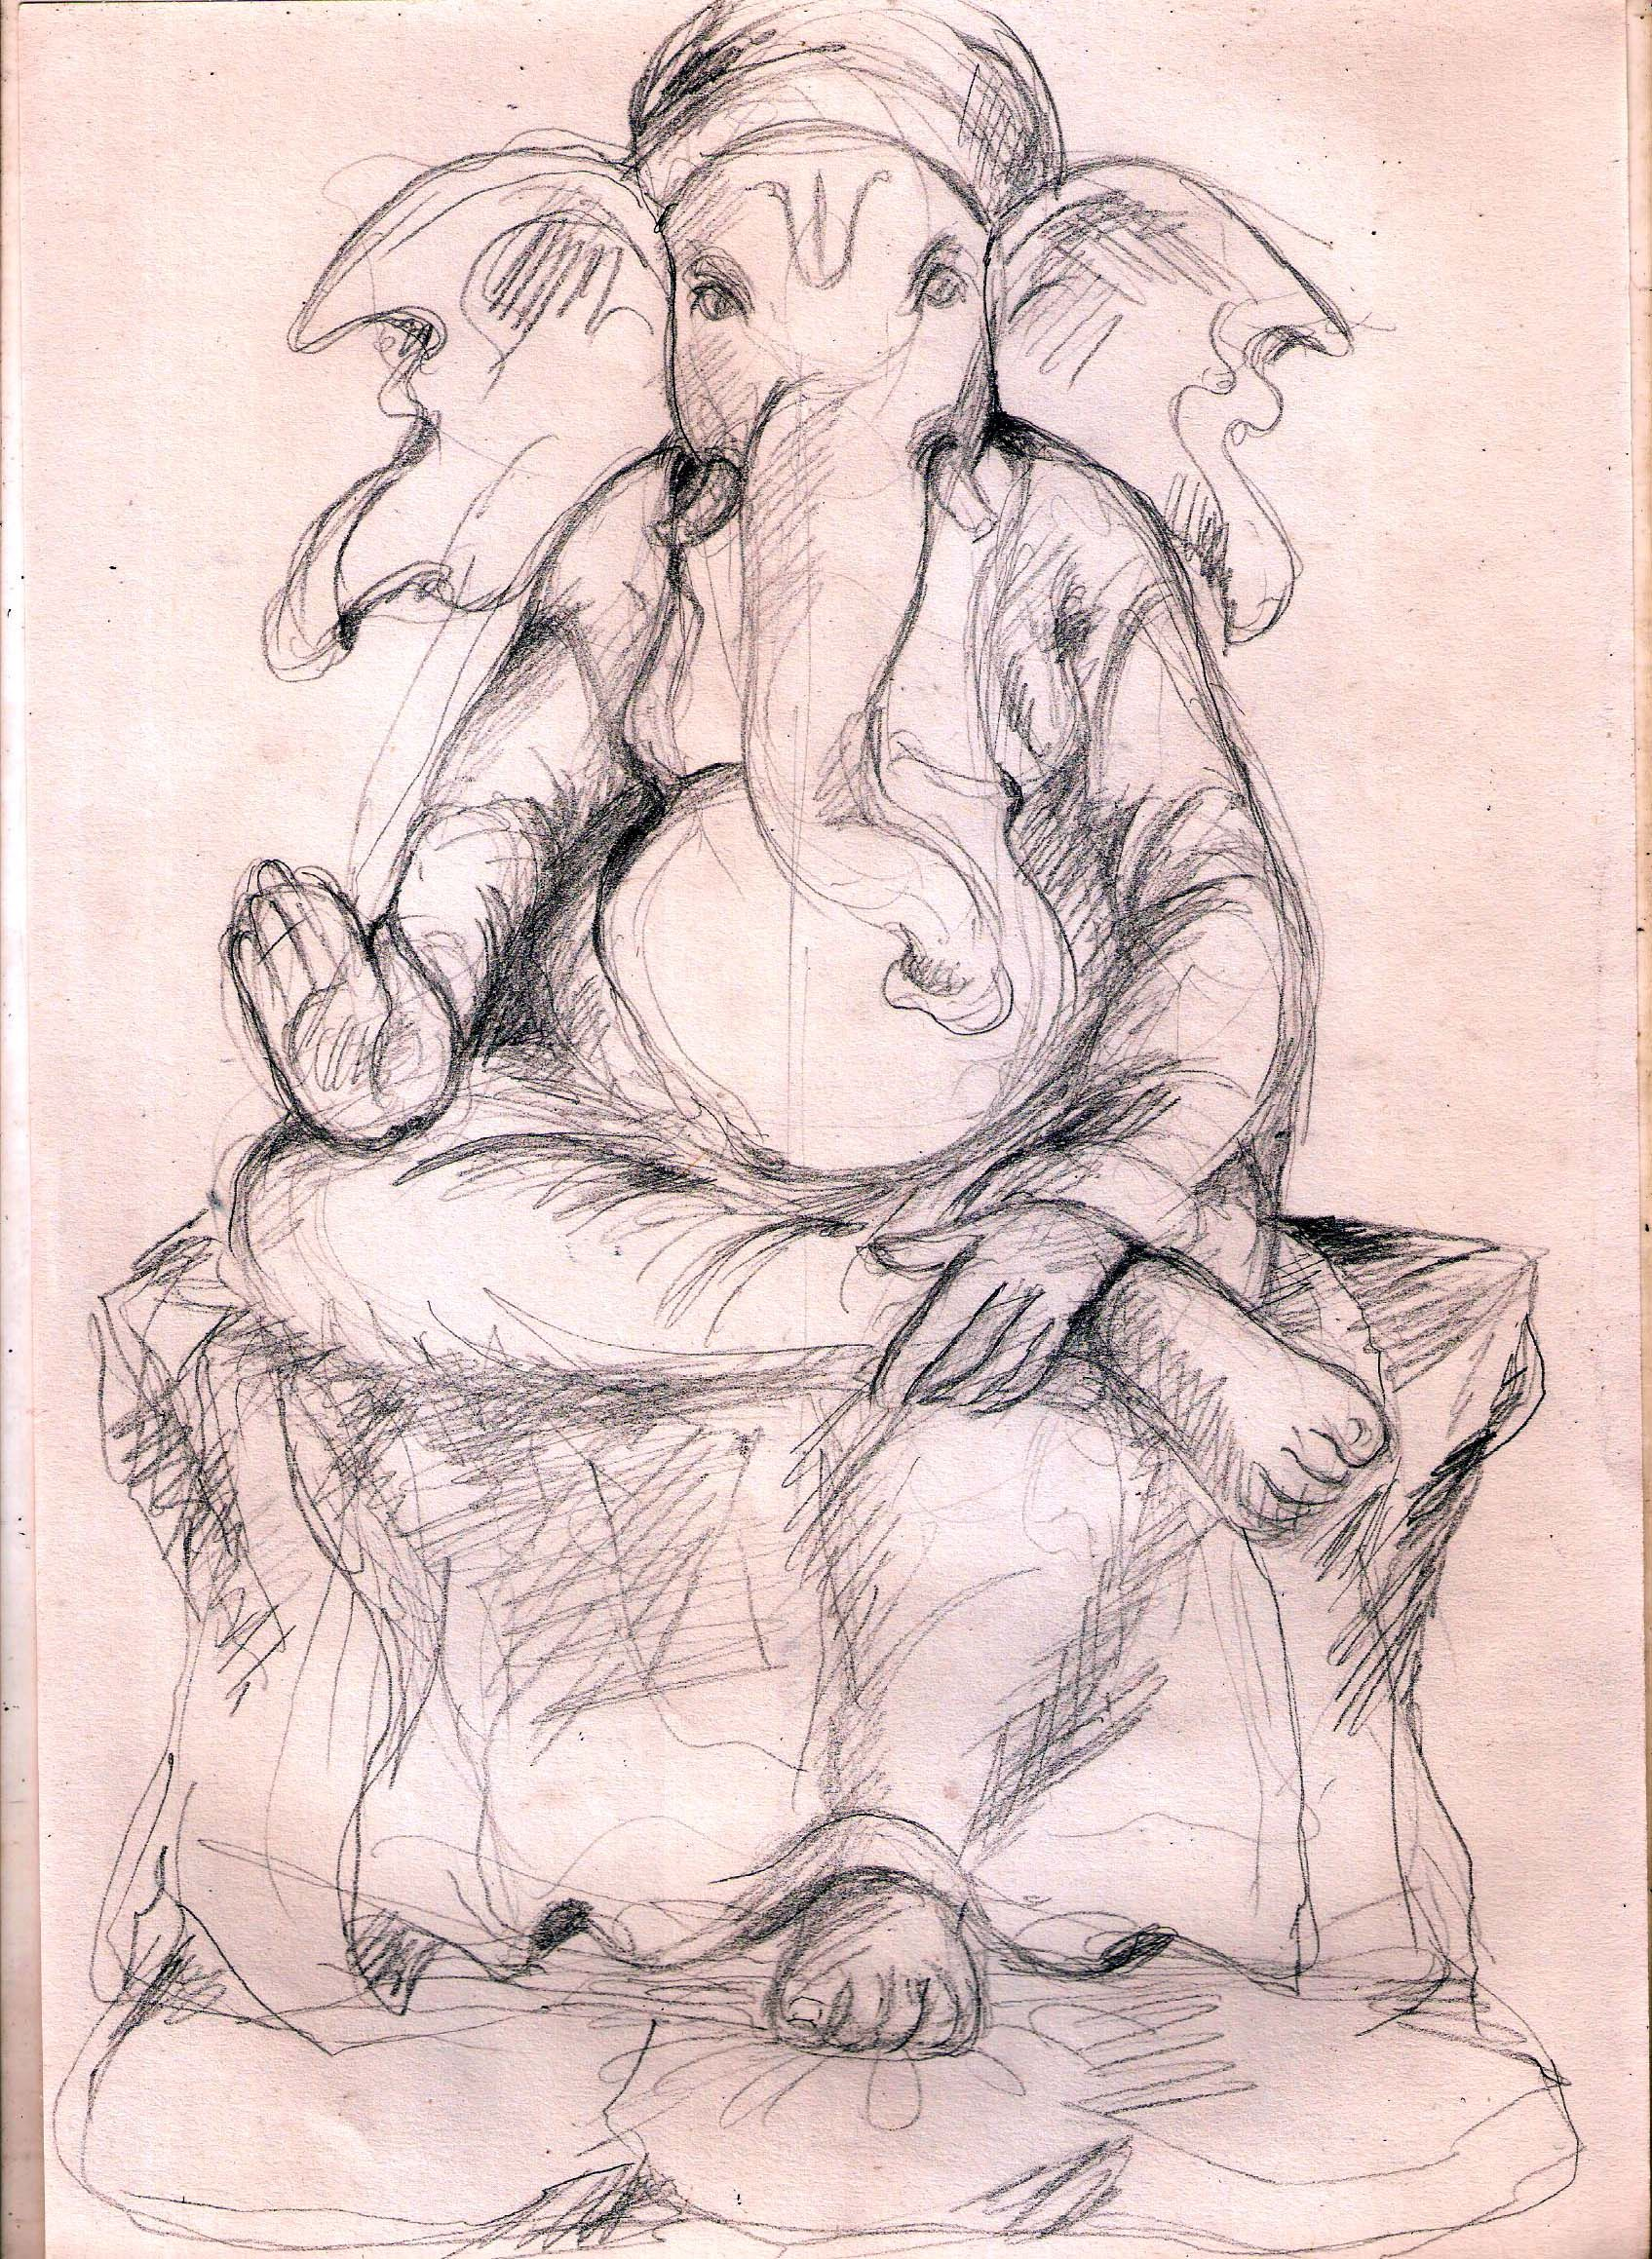 Pencil sketch ganesha sri ganesh ganesha pencil sketching ganesh